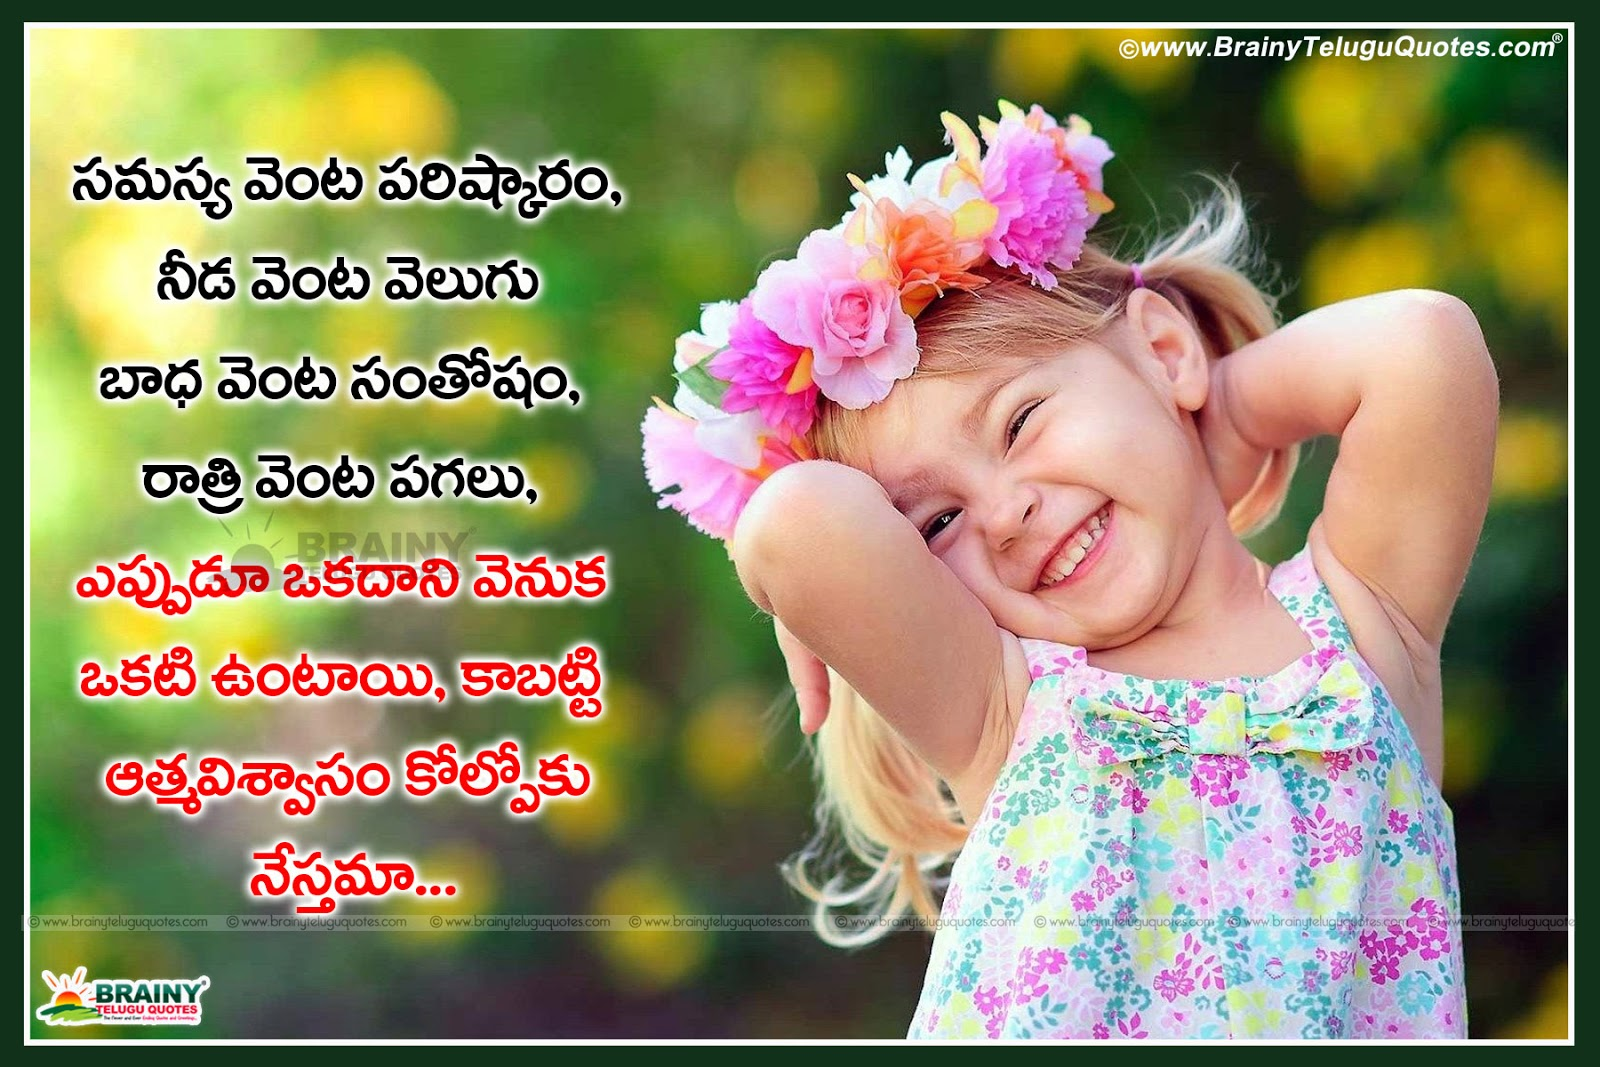 Best Telugu Inspirational Quotes Messages With Cute Baby Hd